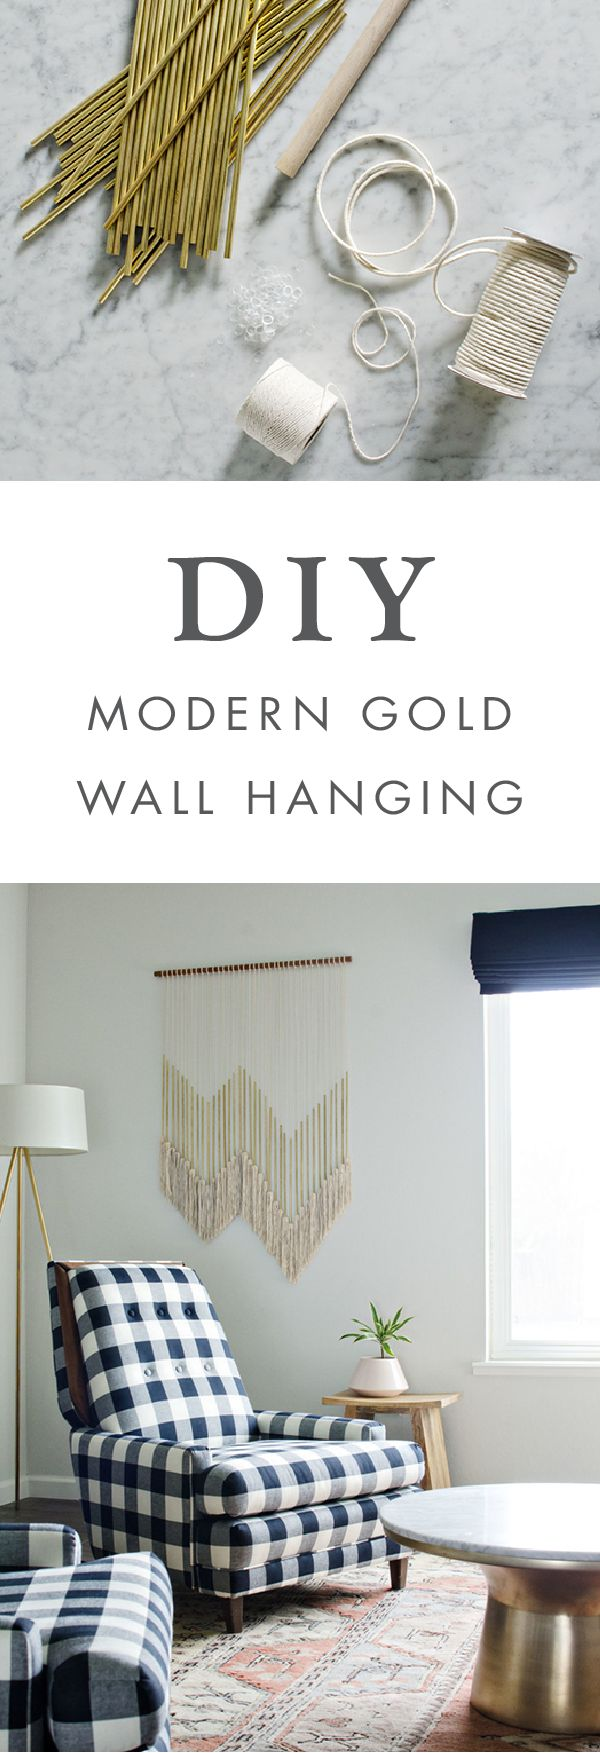 We love the idea of adding this DIY Modern Gold Wall Hanging to any room of